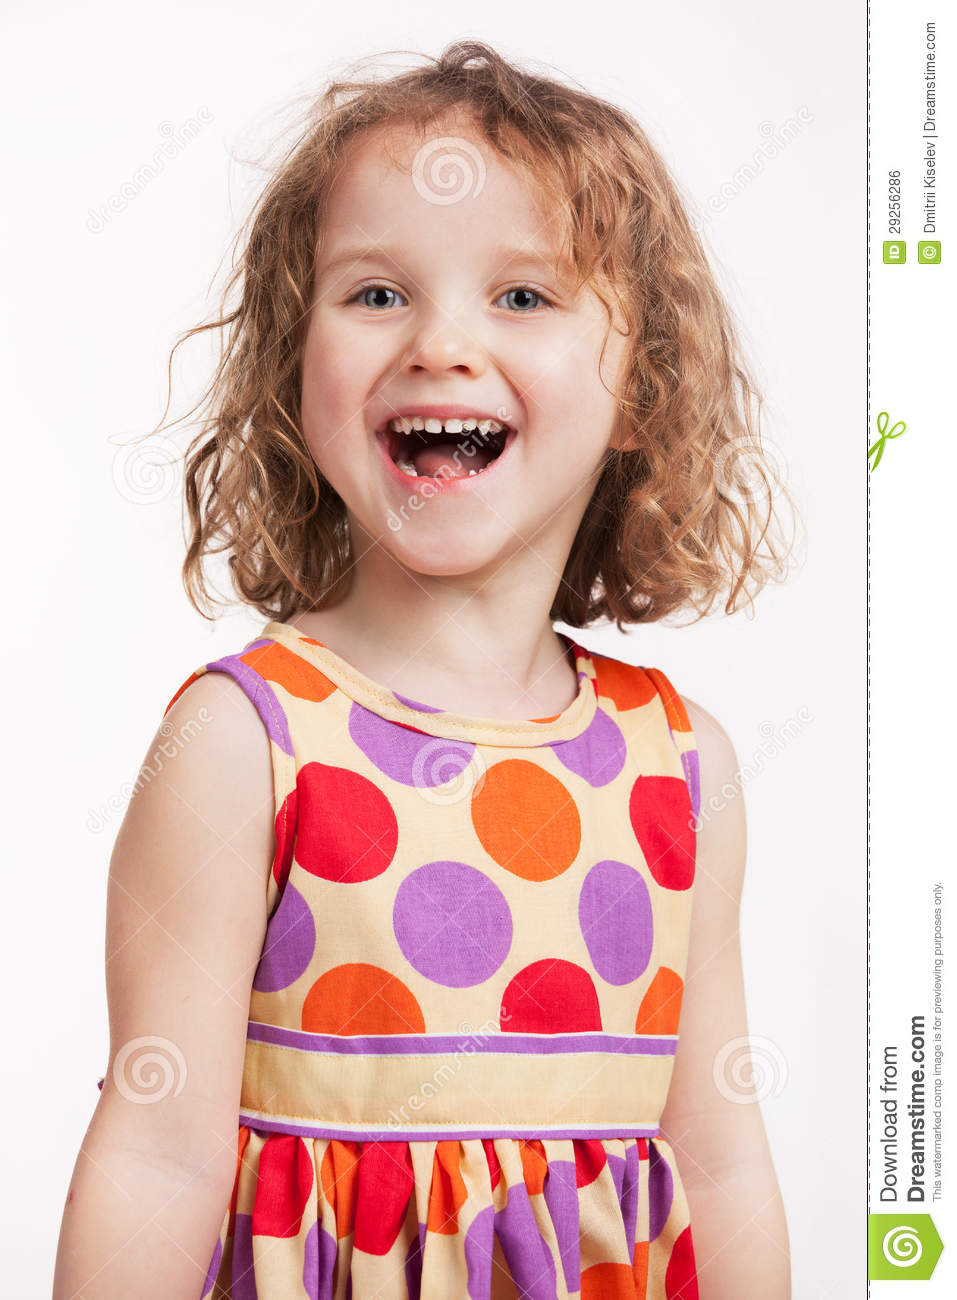 Happy Little Girl In A Bright Dress Royalty Free Stock ...